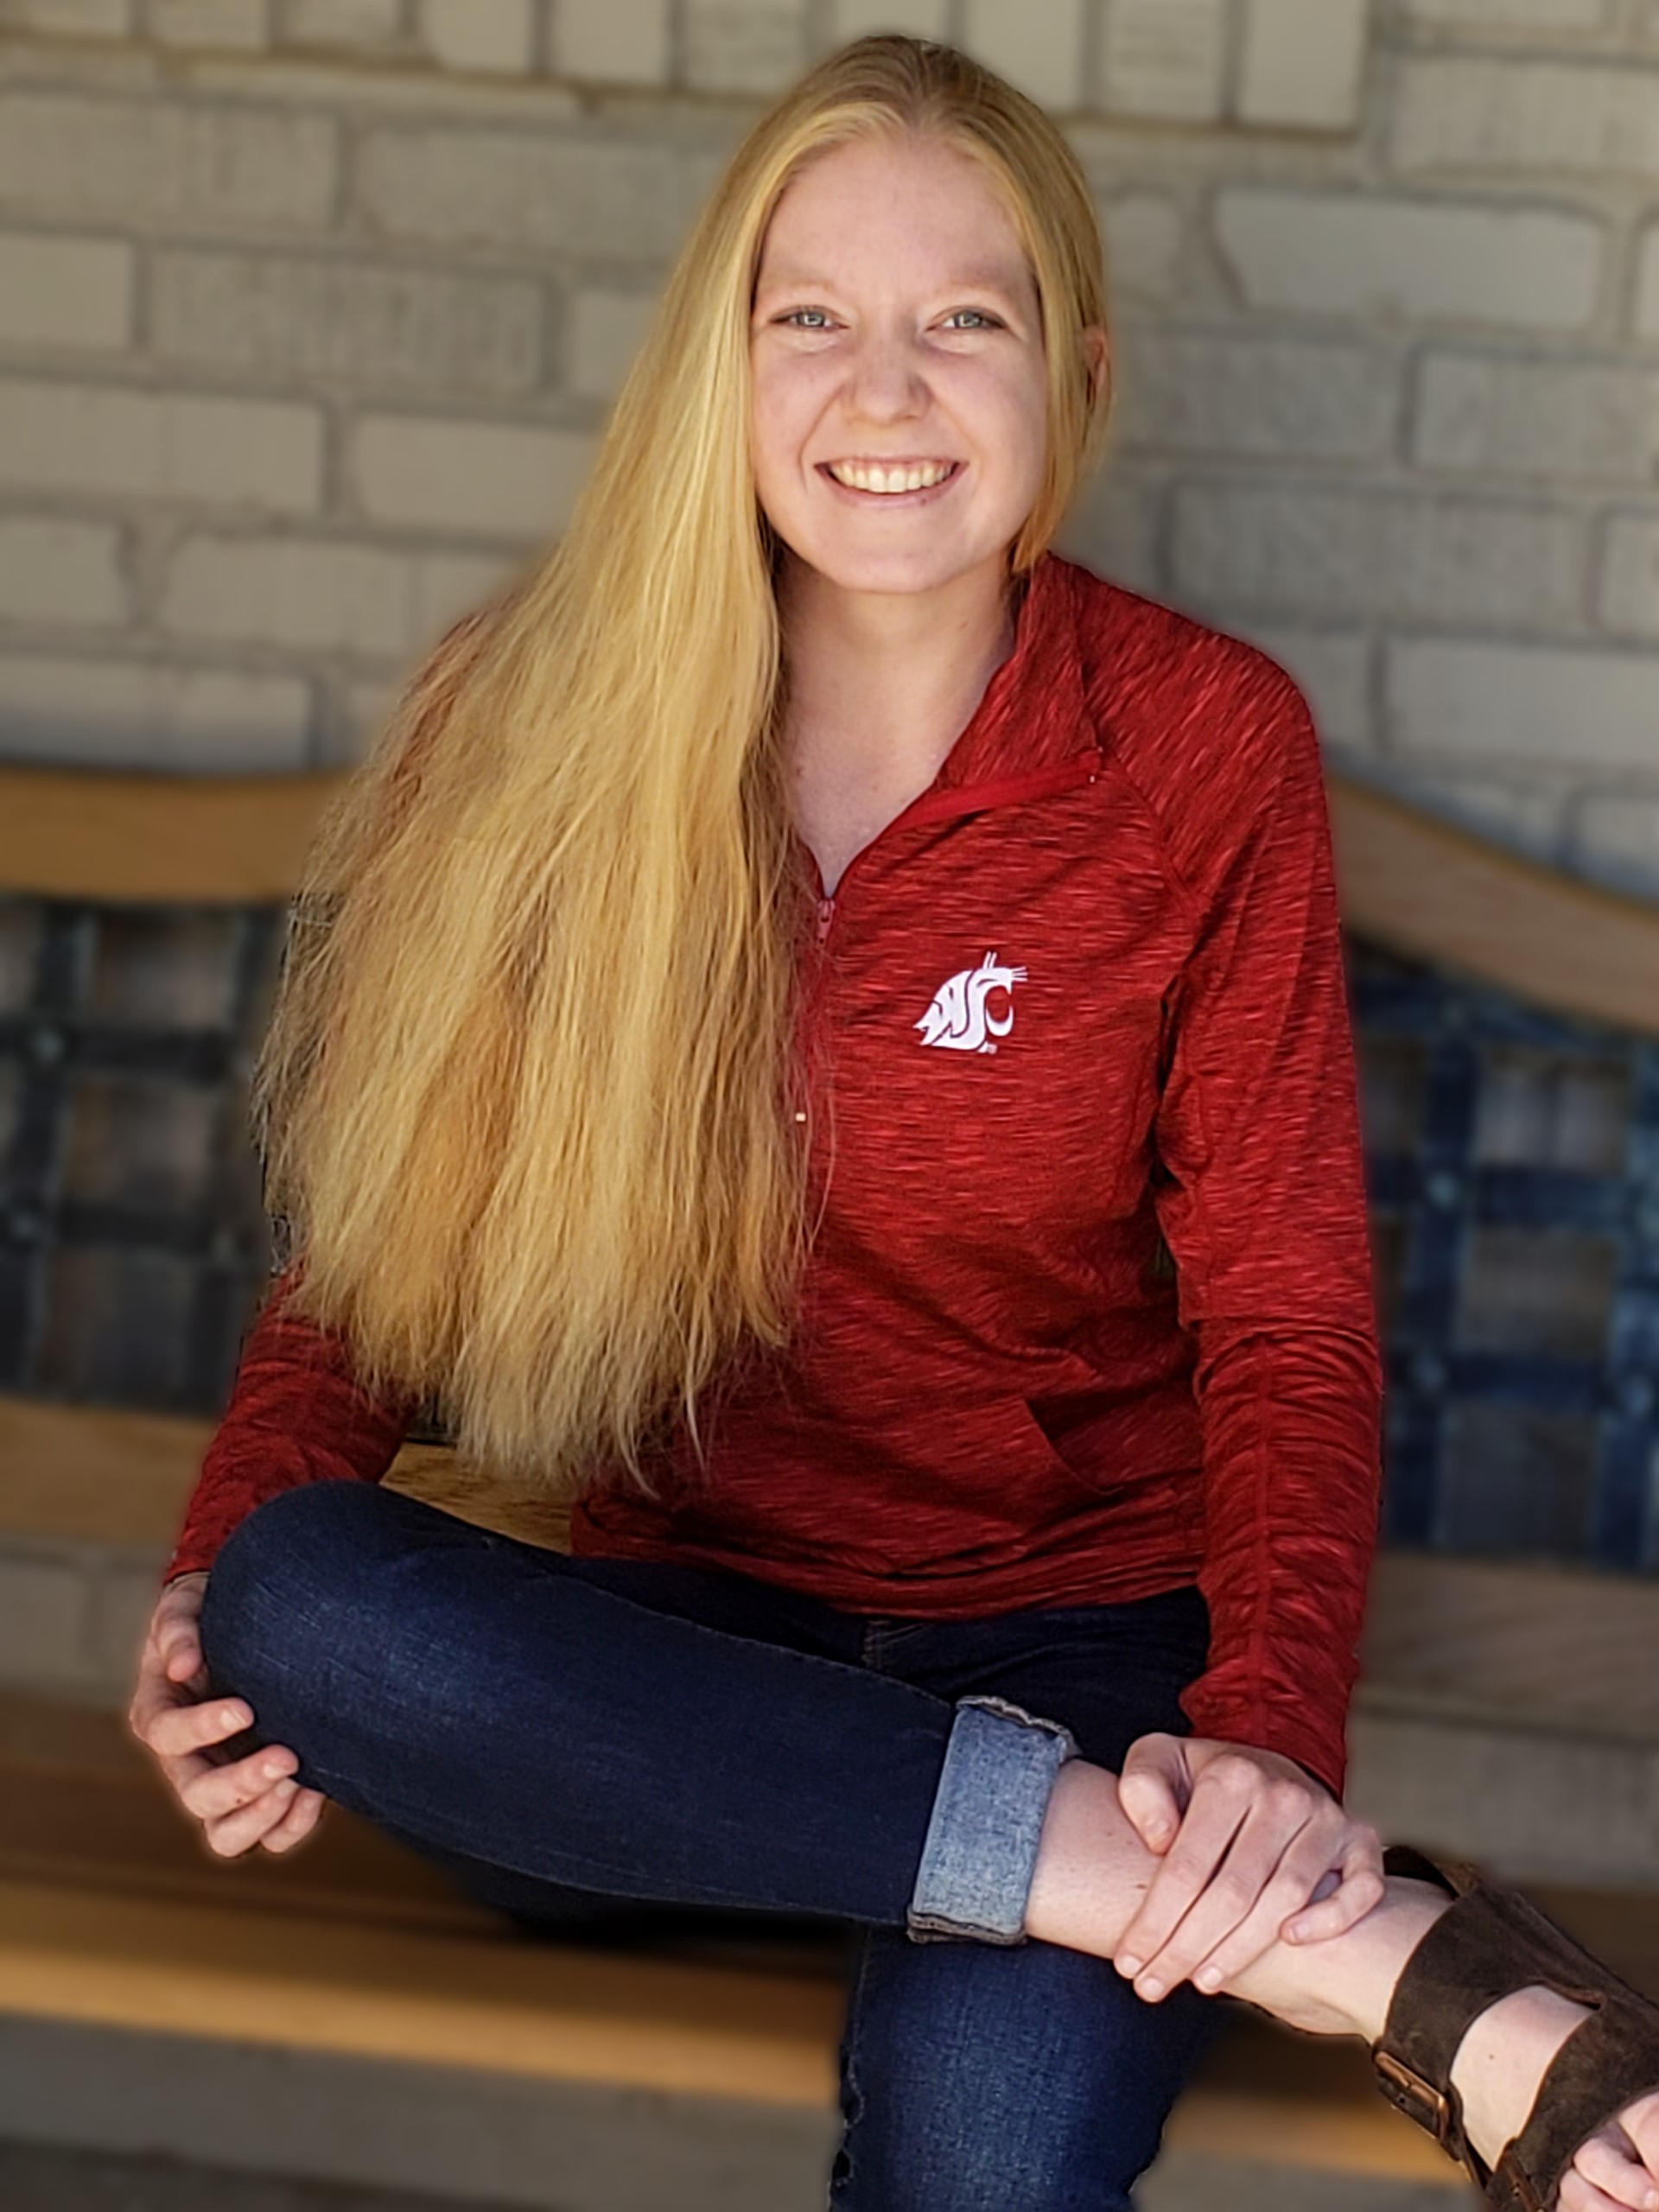 Jessica Erickson seated on a bench and wearing WSU Cougar spirit gear.